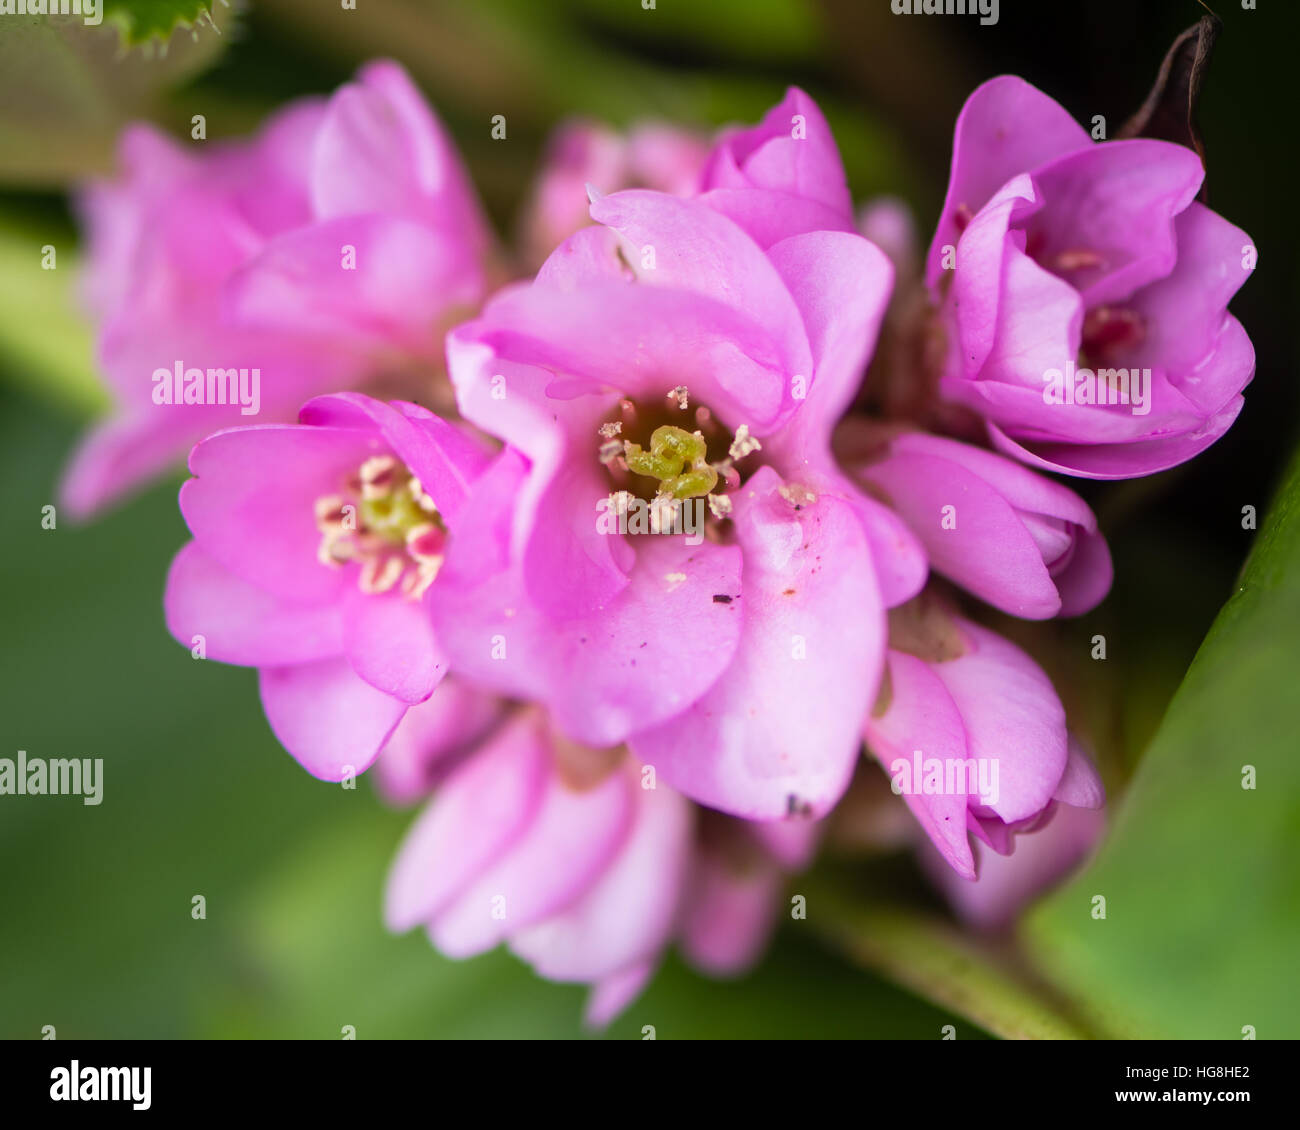 Bergenie Giftig Bell Shaped Pink Flowers Stockfotos Bell Shaped Pink Flowers